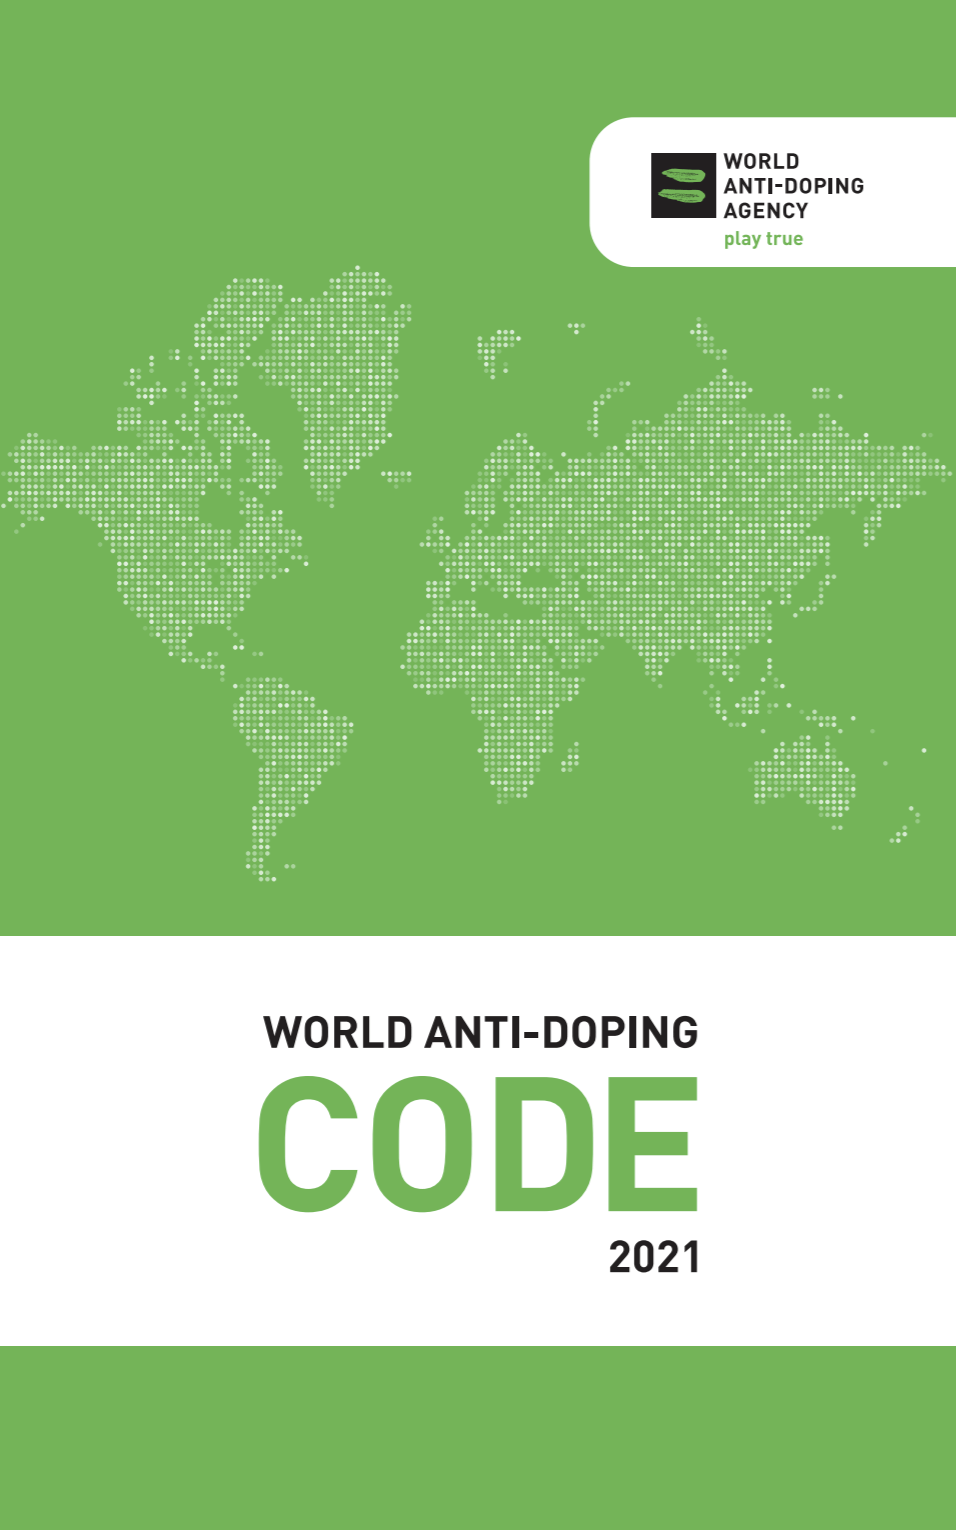 The cover of the 2021 World Anti-Doping Agency Code.